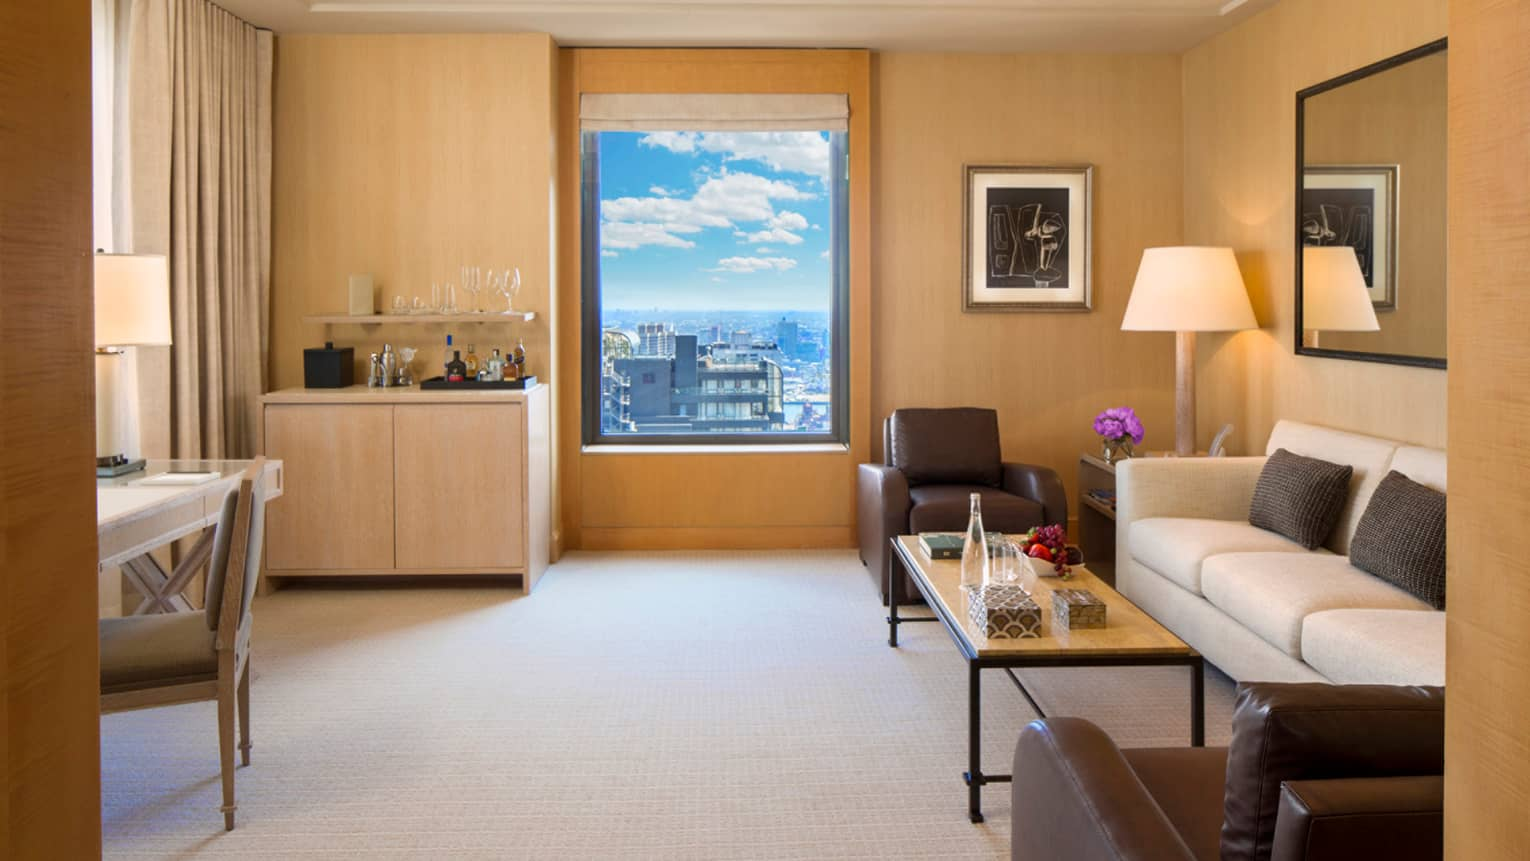 Park Avenue Suite small wet bar by window, white sofa with two brown leather chairs